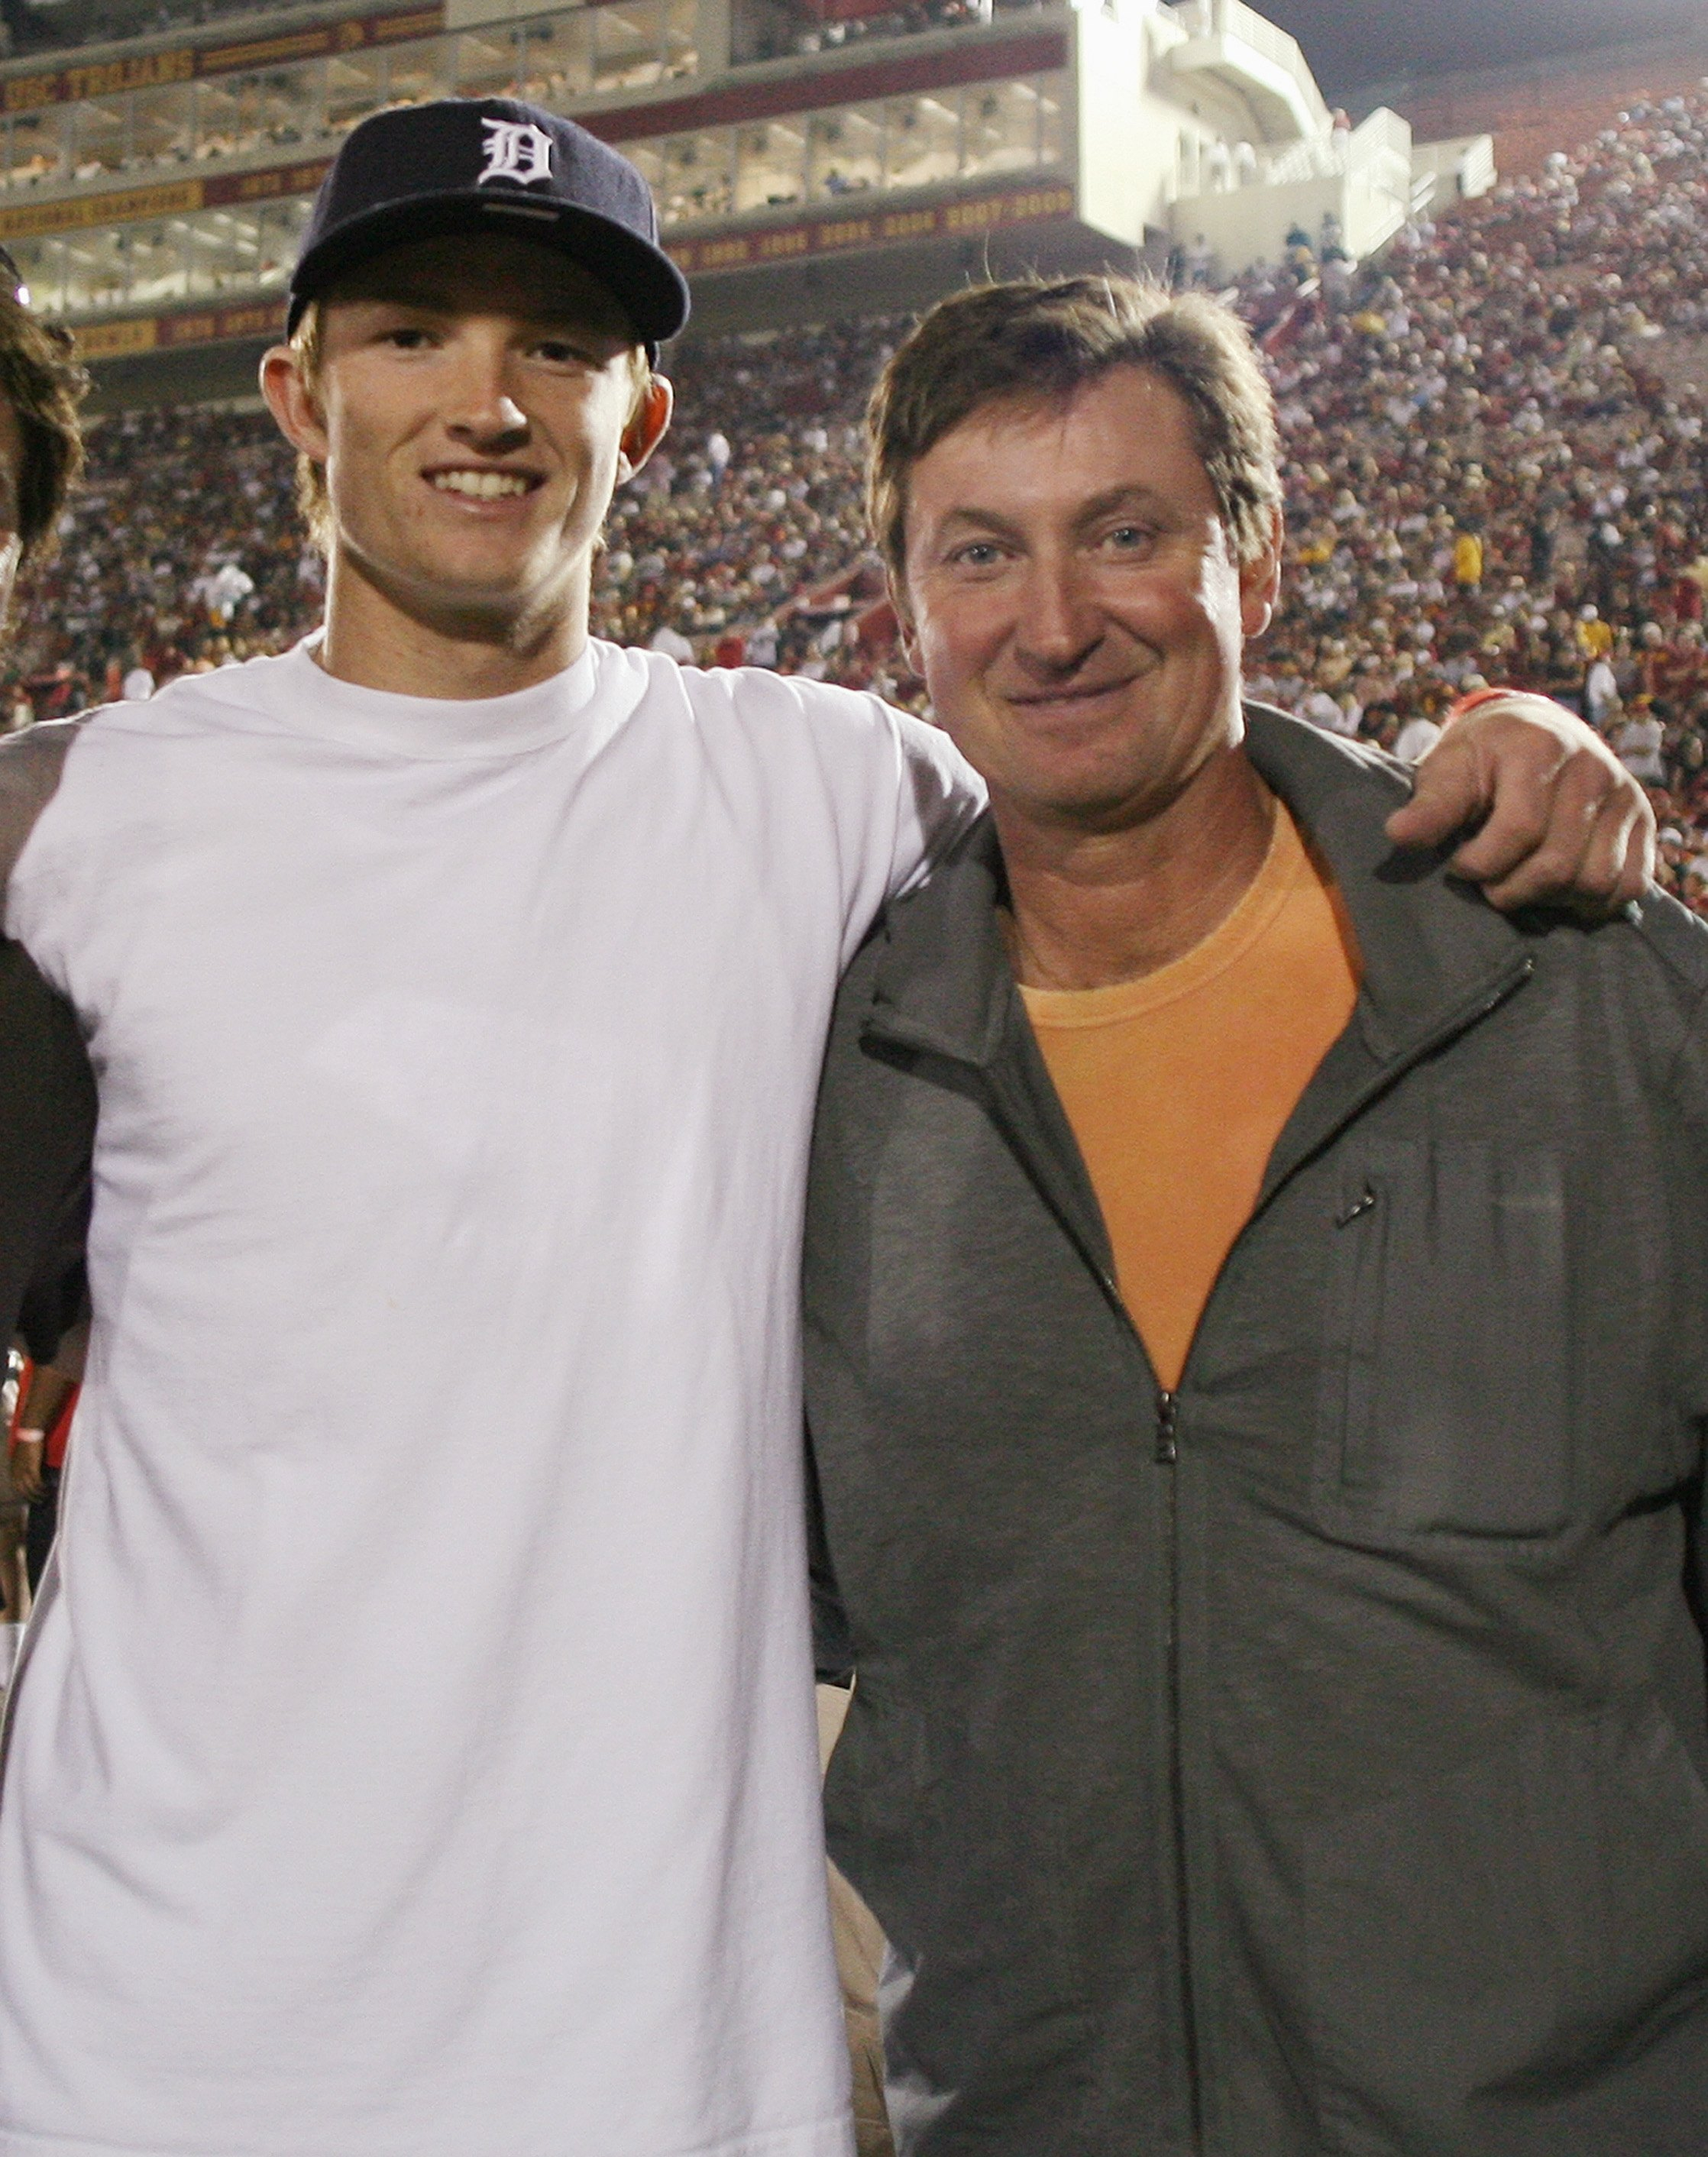 LOS ANGELES - SEPTEMBER 26:  Trevor Gretzky and Wayne Gretzky smile for a photo in the endzone before the game between the Washington State Cougars and the USC Trojans on September 26, 2009 at the Los Angeles Coliseum in Los Angeles, California.  (Photo b